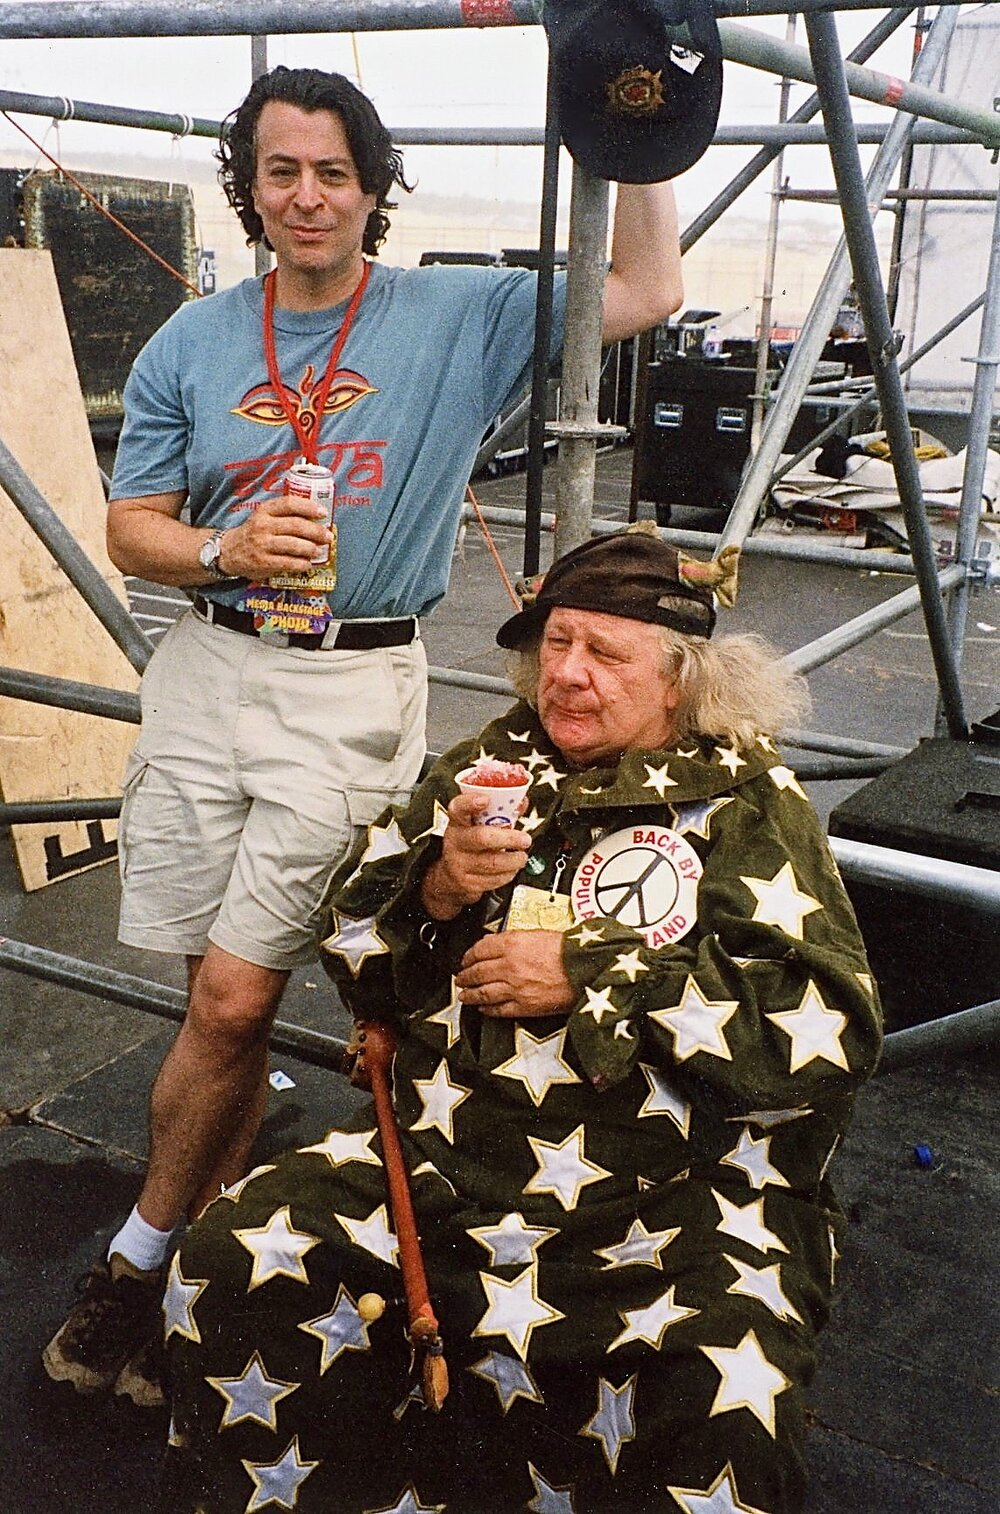 Backstage with Wavy Gravy, Woodstock '99